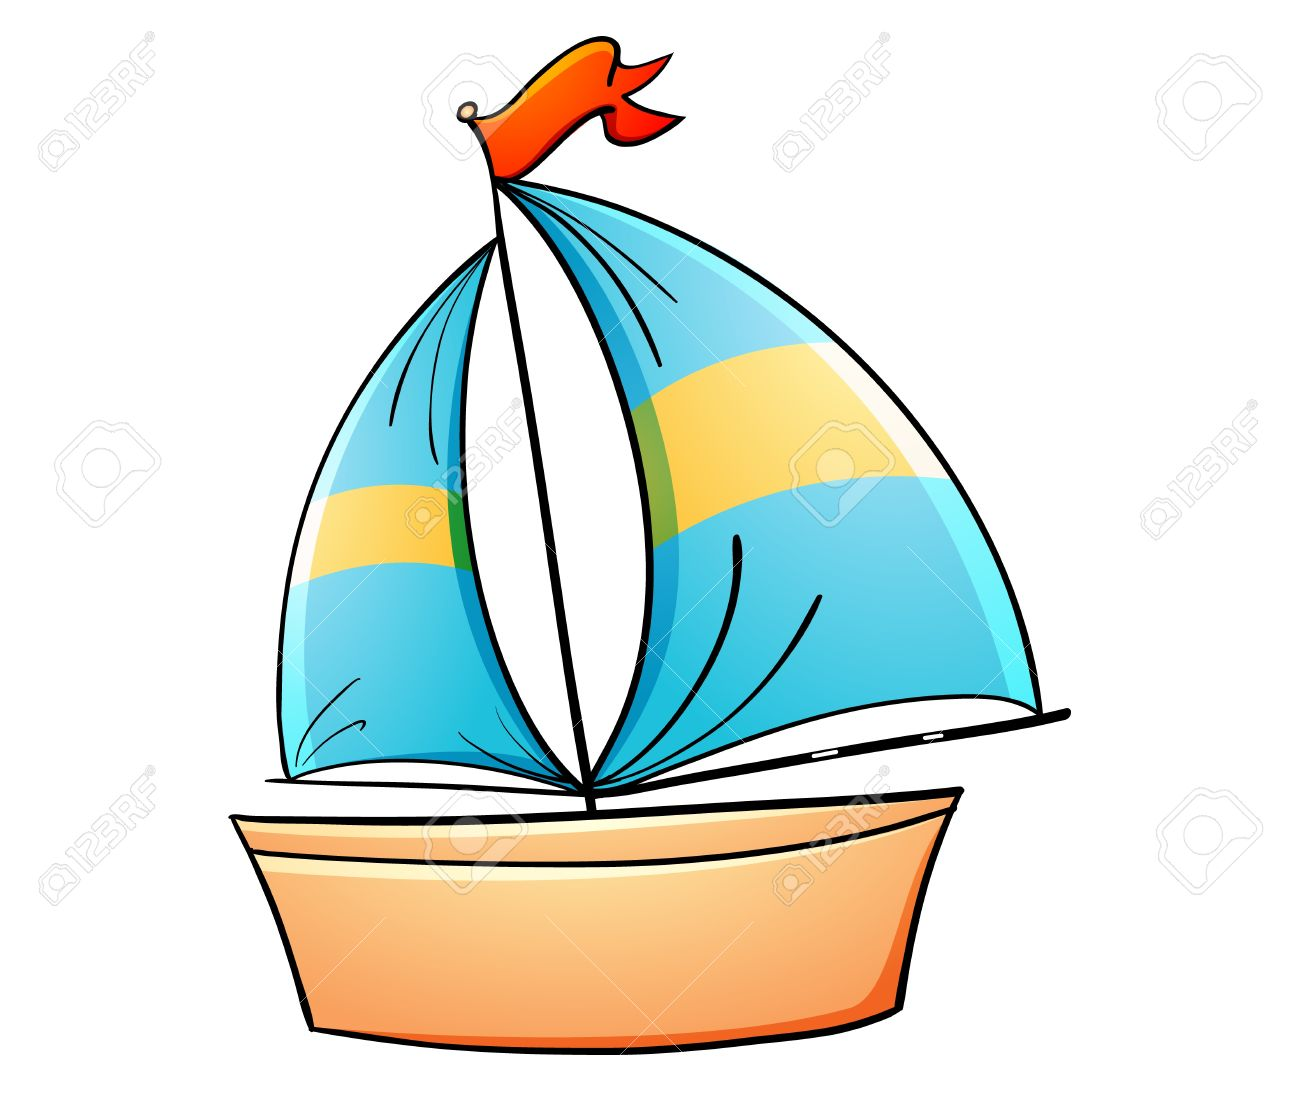 1300x1120 Toy Boat Clipart 13749179 Illustration Of A Toy Yacht